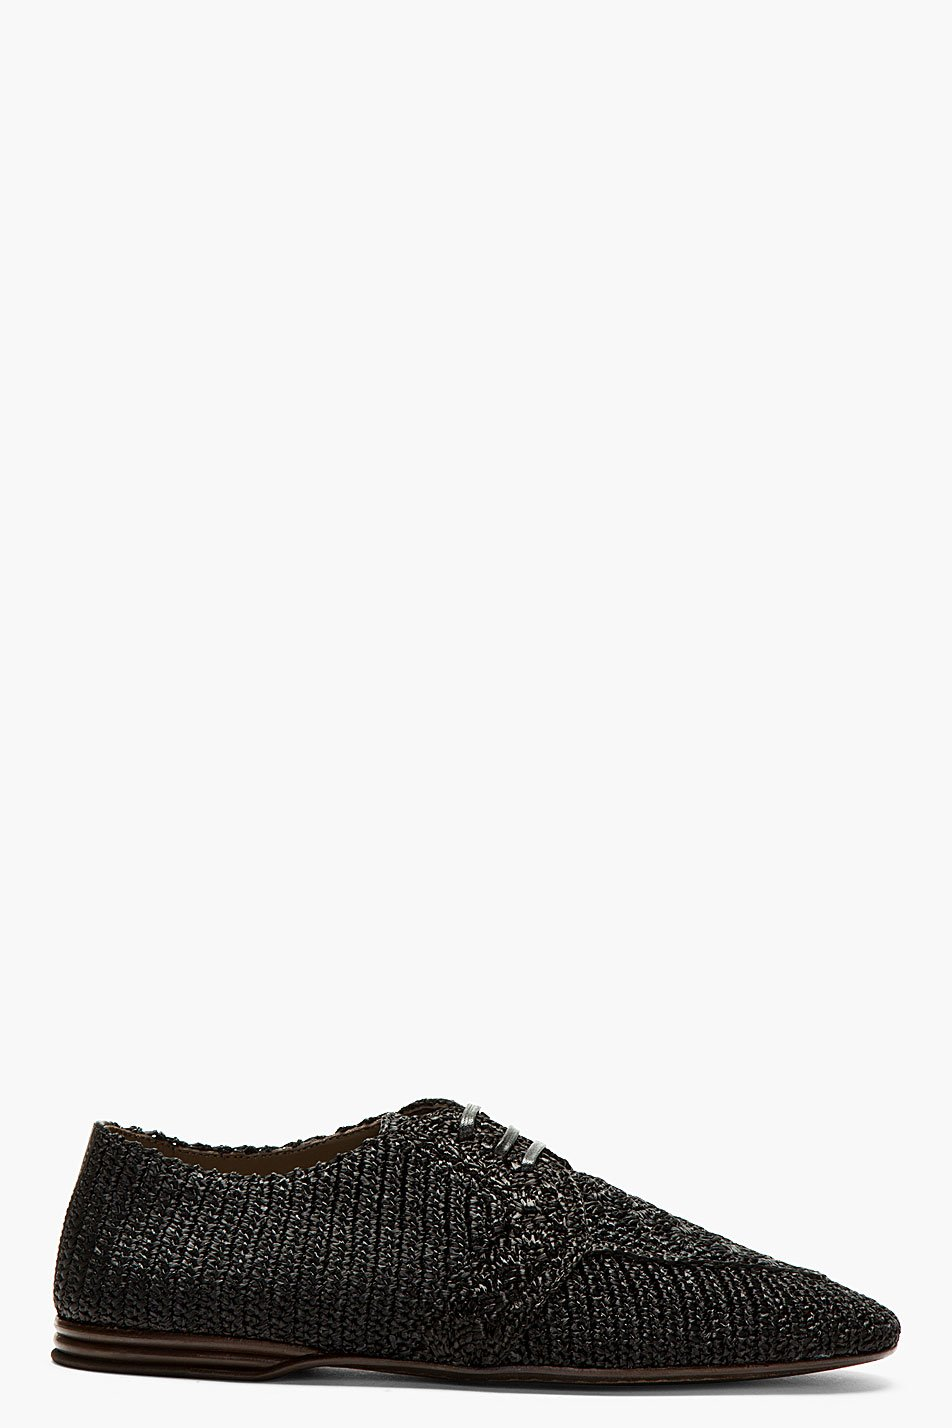 Dolce and gabbana black patterned weave raffia derbys